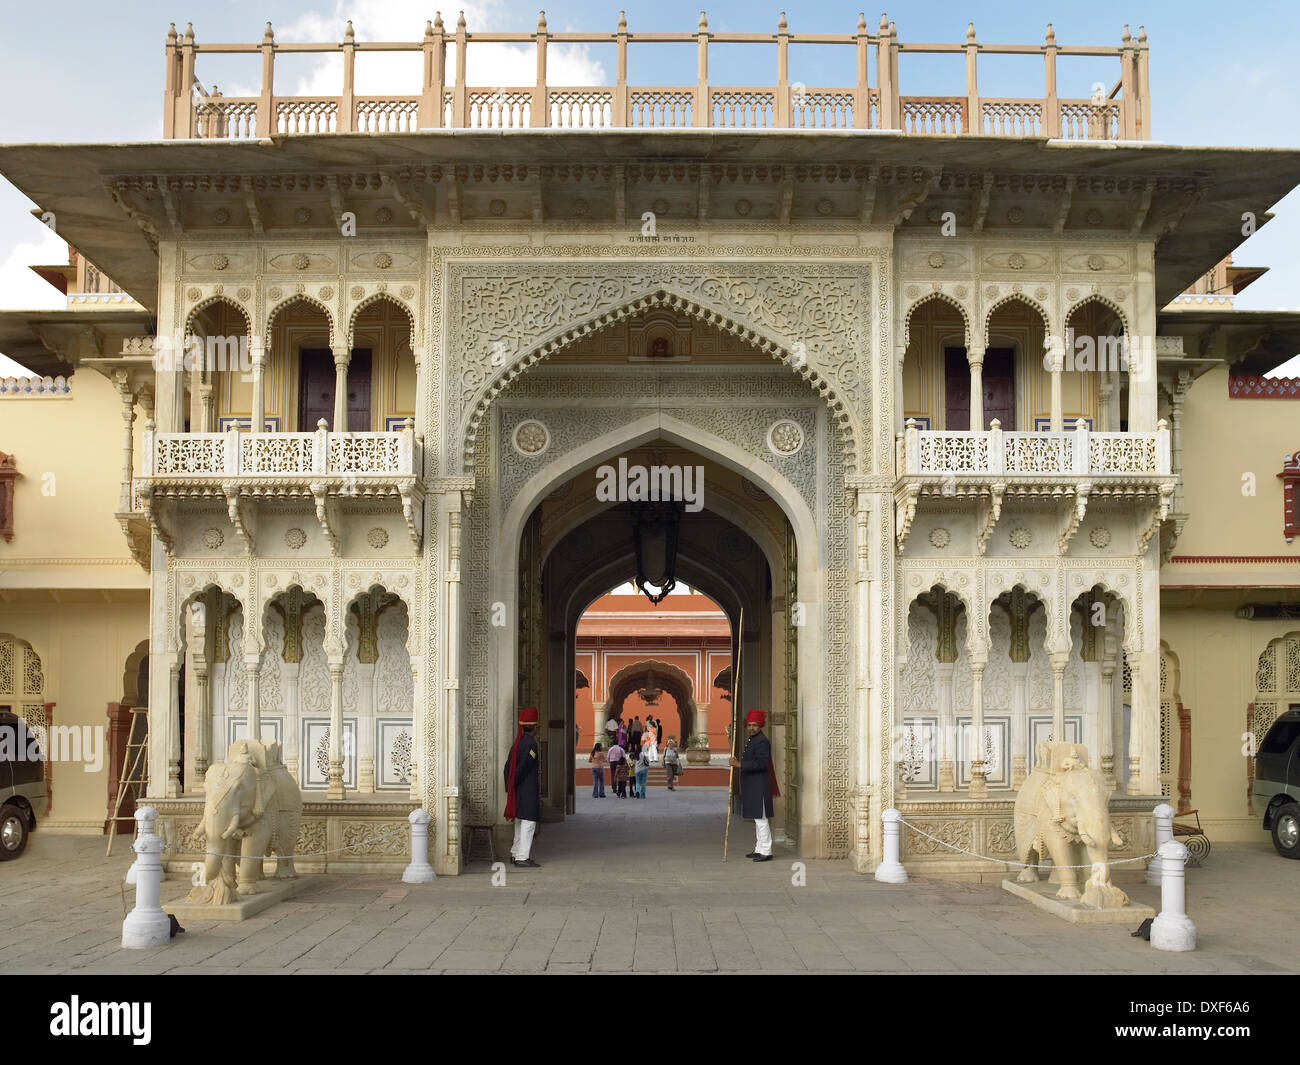 Rajendra Pol gateway at the City Palace in the city of Jaipur in Rajasthan in western India. - Stock Image